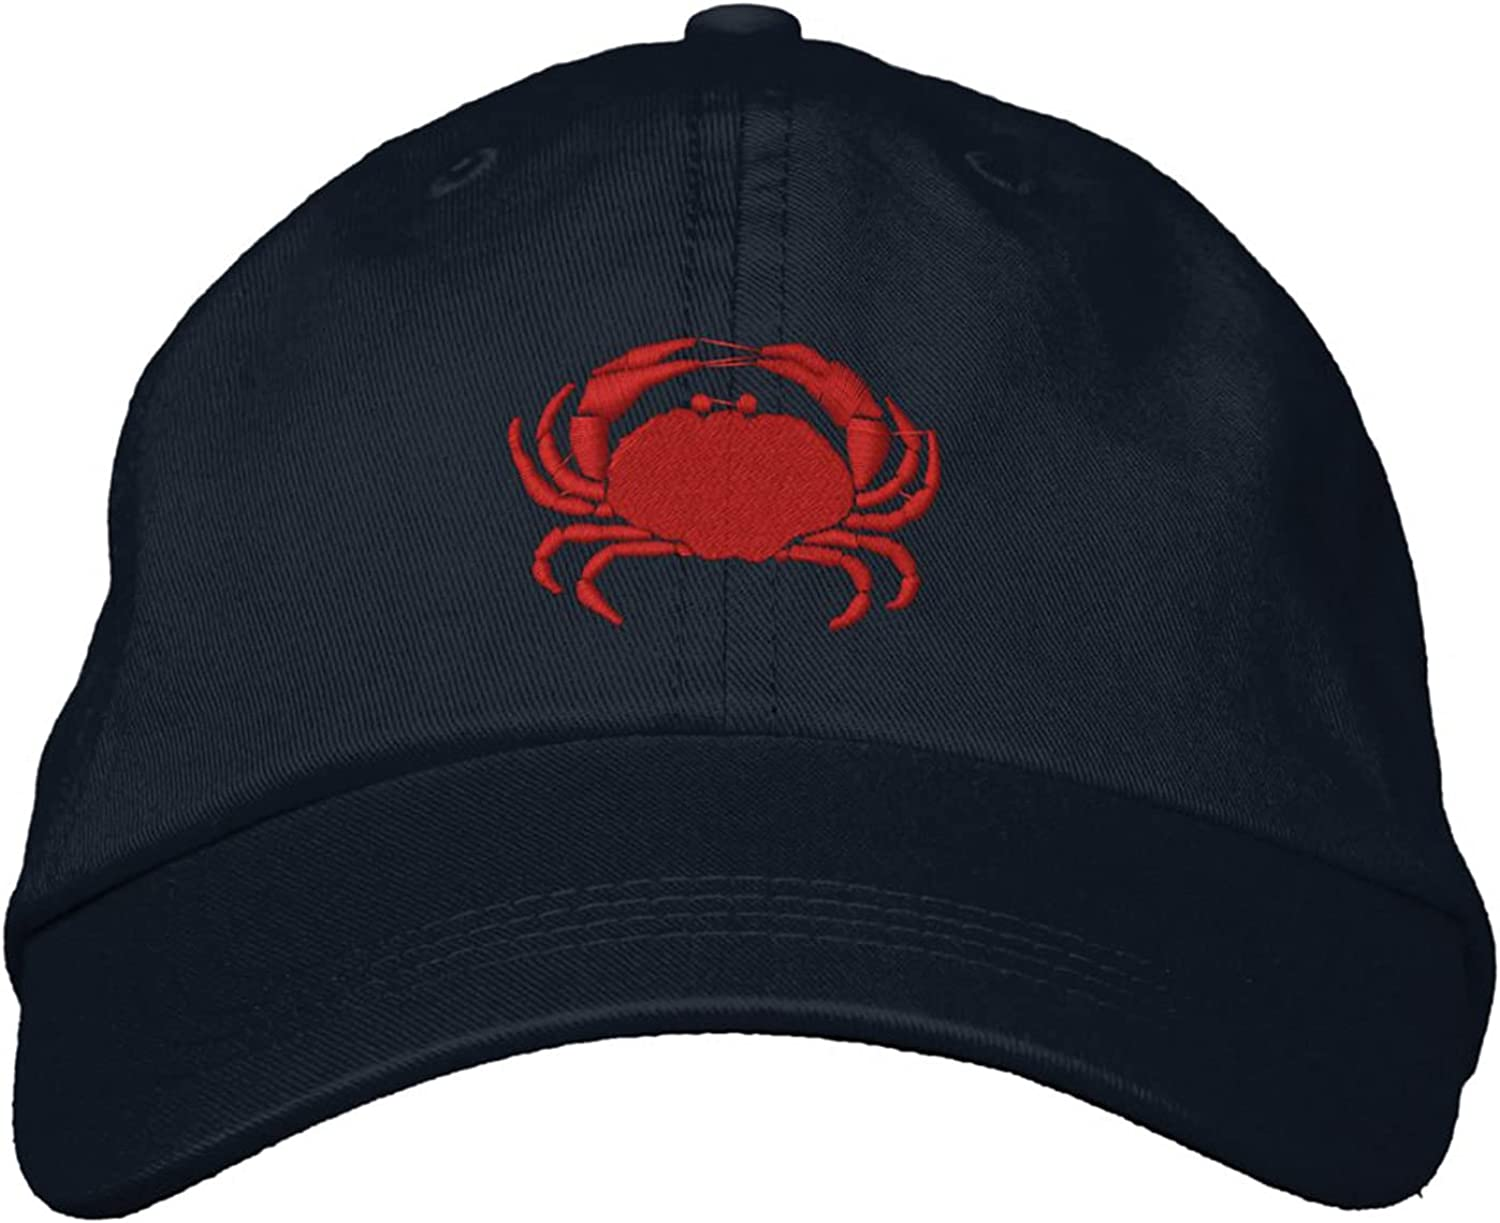 Embroidery Baseball Cap Craby Crab Embroidered Dad Hats for Men Women Adjustable Sun Hats